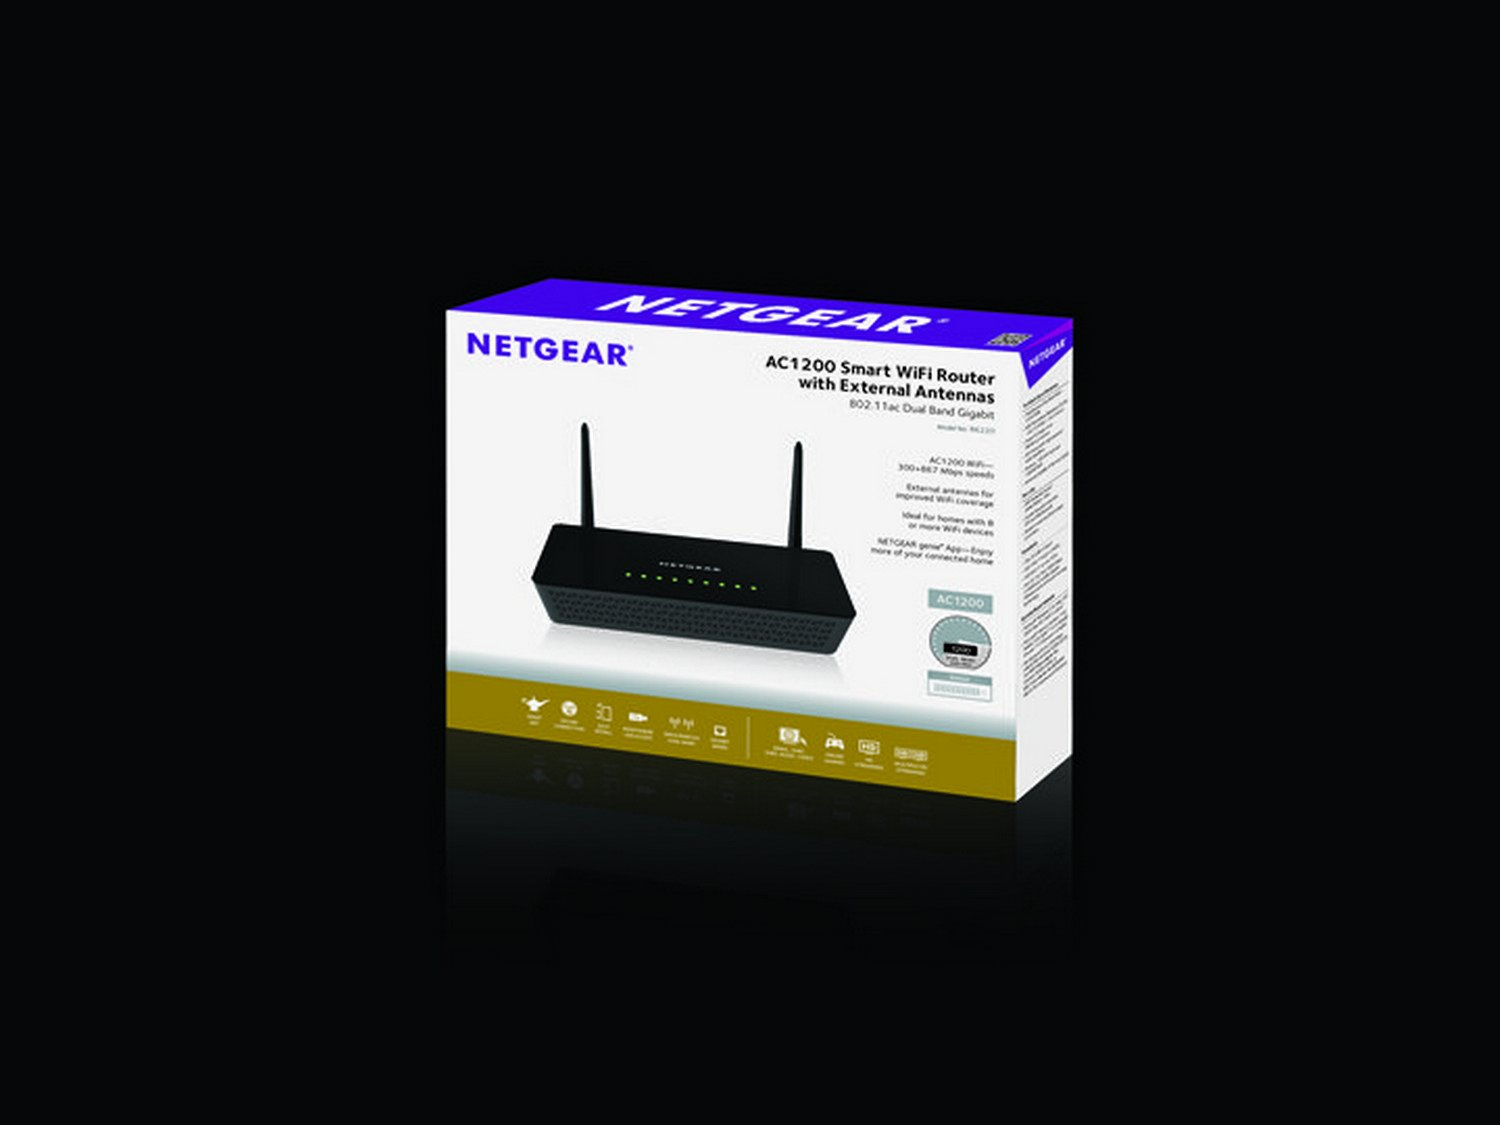 R6020 wifi routers networking home netgear - Amazon Com Netgear Ac1200 Smart Wi Fi Router With External Antennas R6220 100nas Computers Accessories